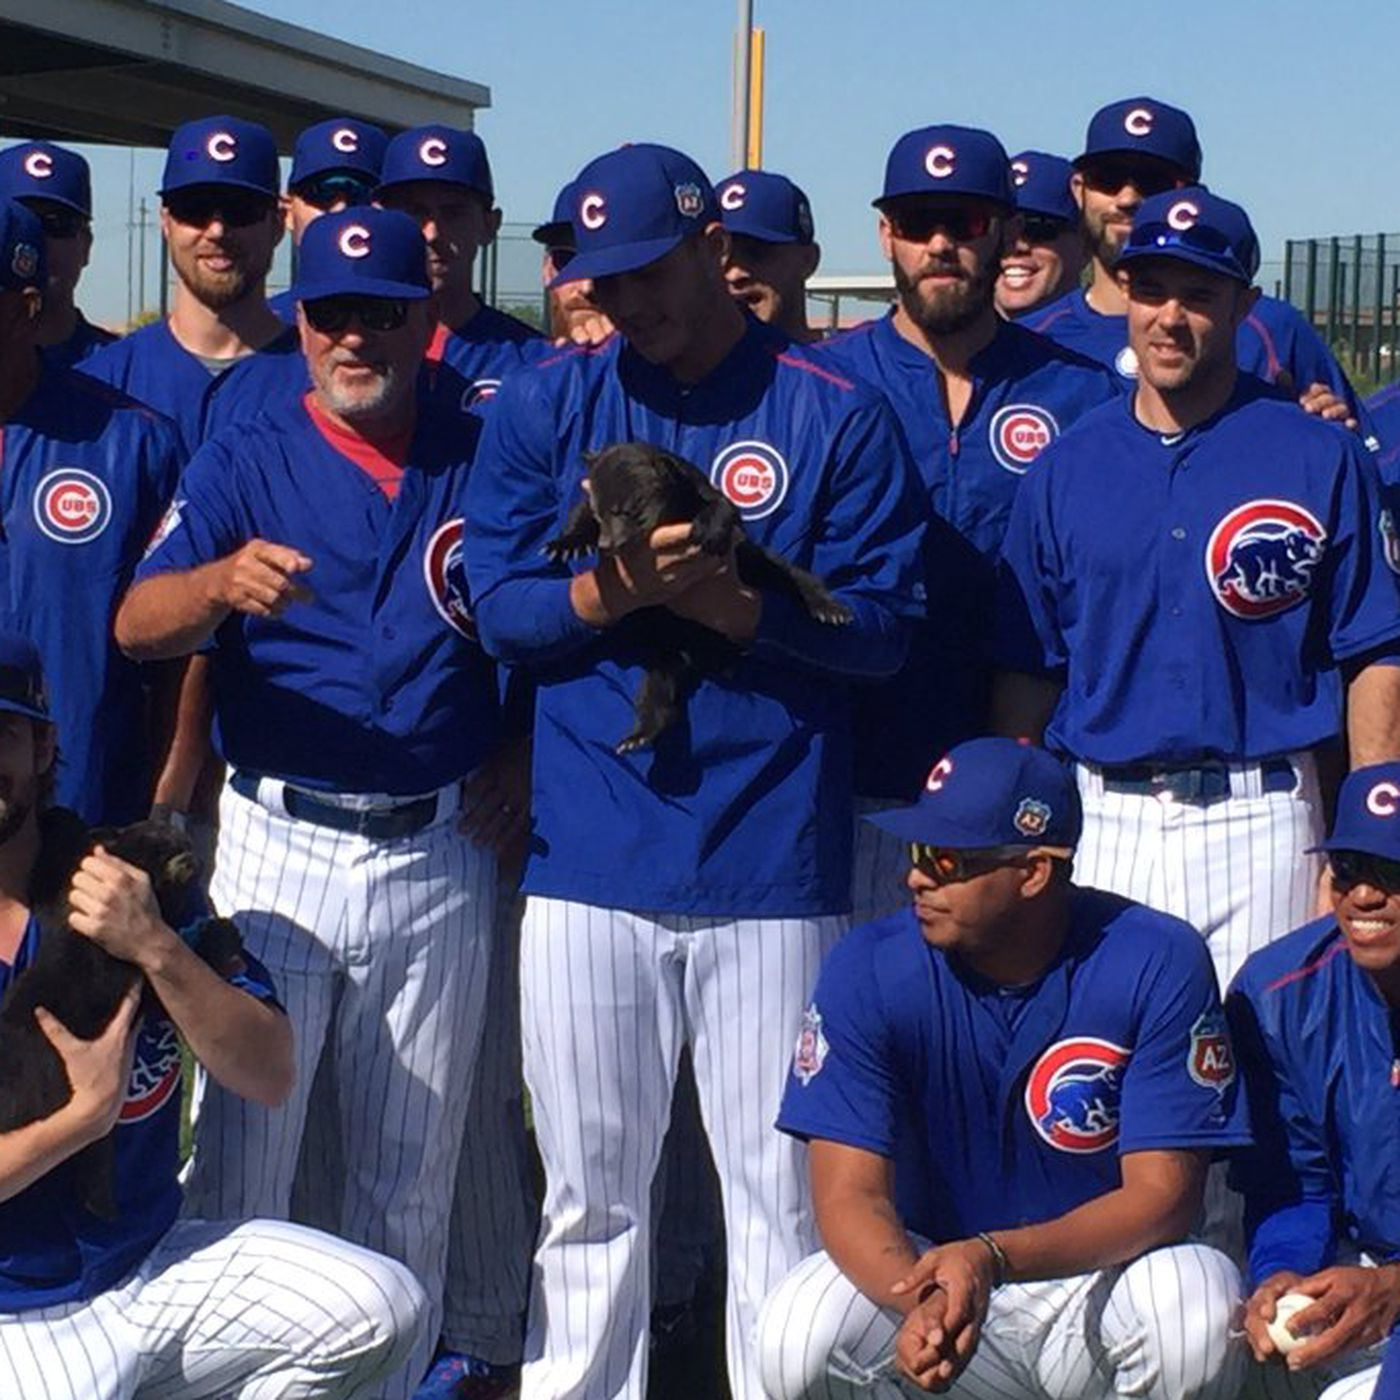 The Cubs are holding actual bear cubs at spring training because life is  beautiful - SBNation.com